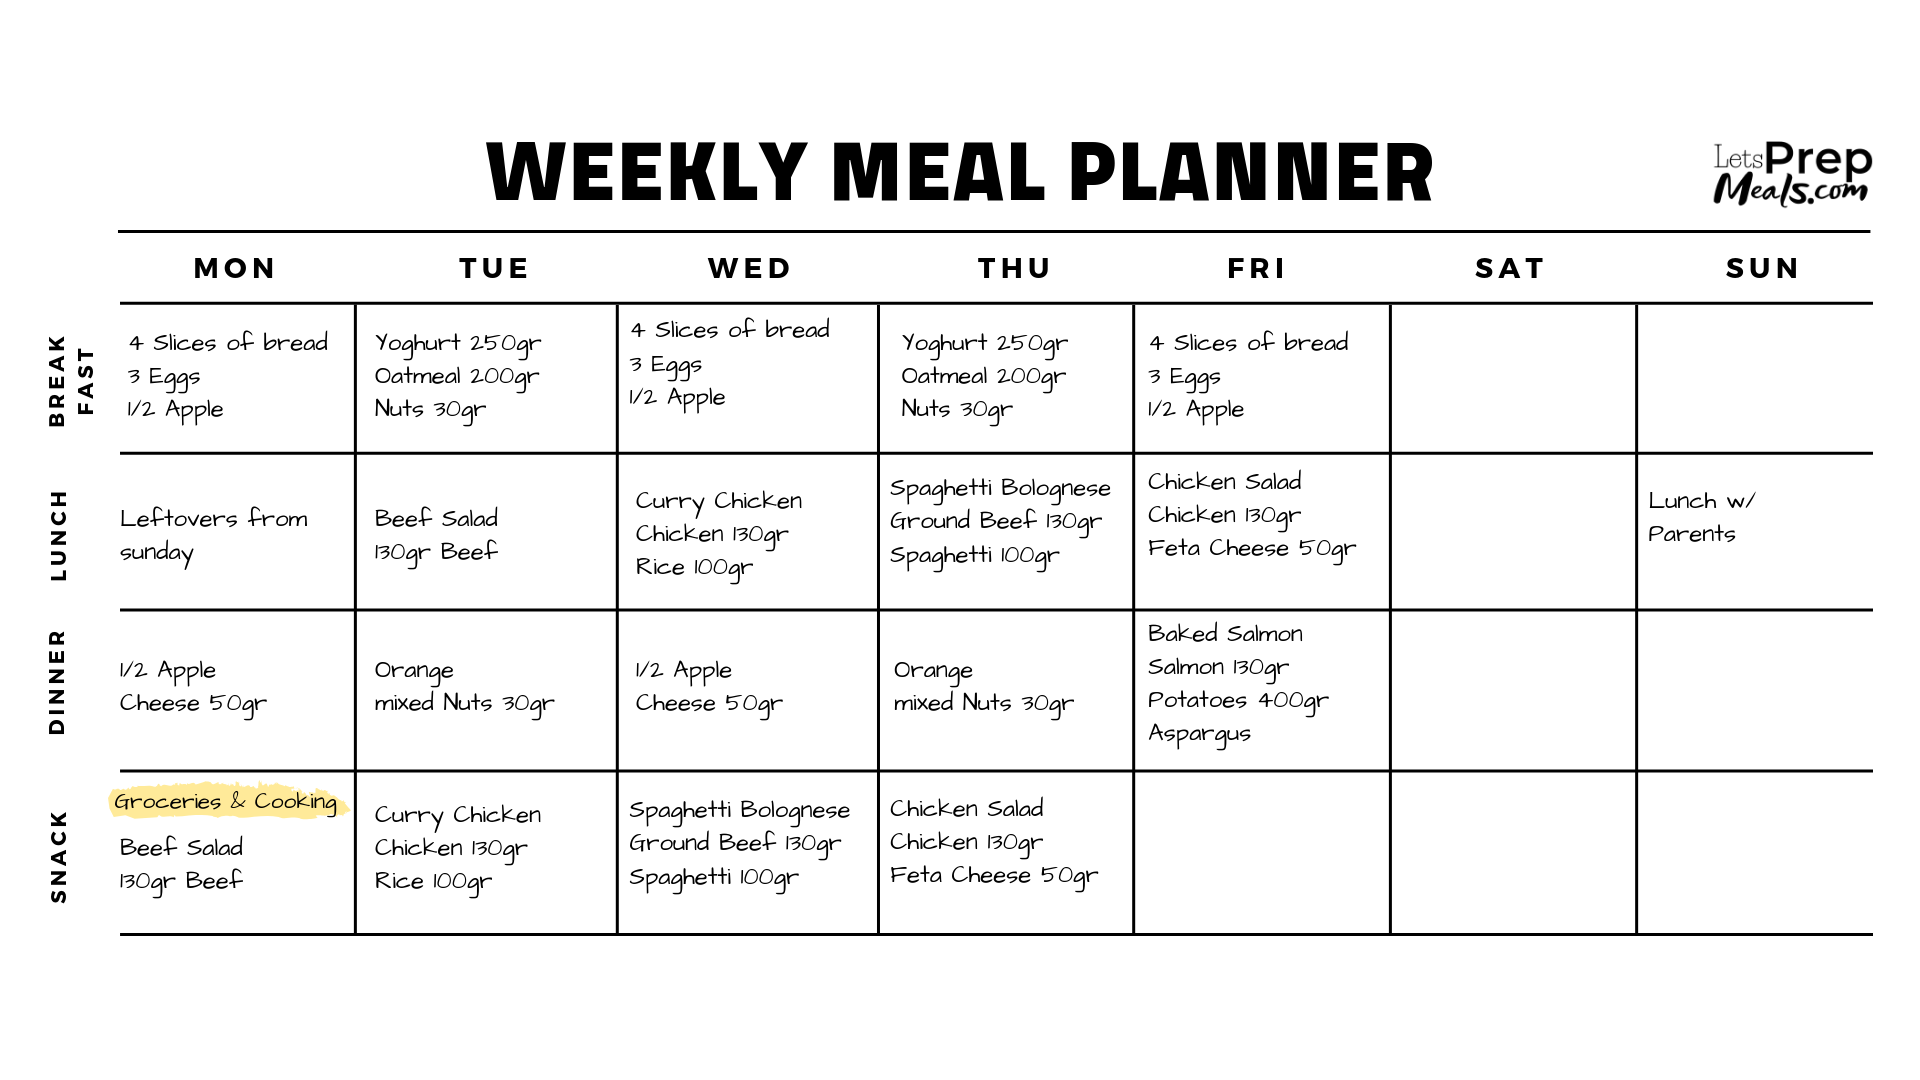 LetsPrepMeals.com - Weekly Meal Planner with meals